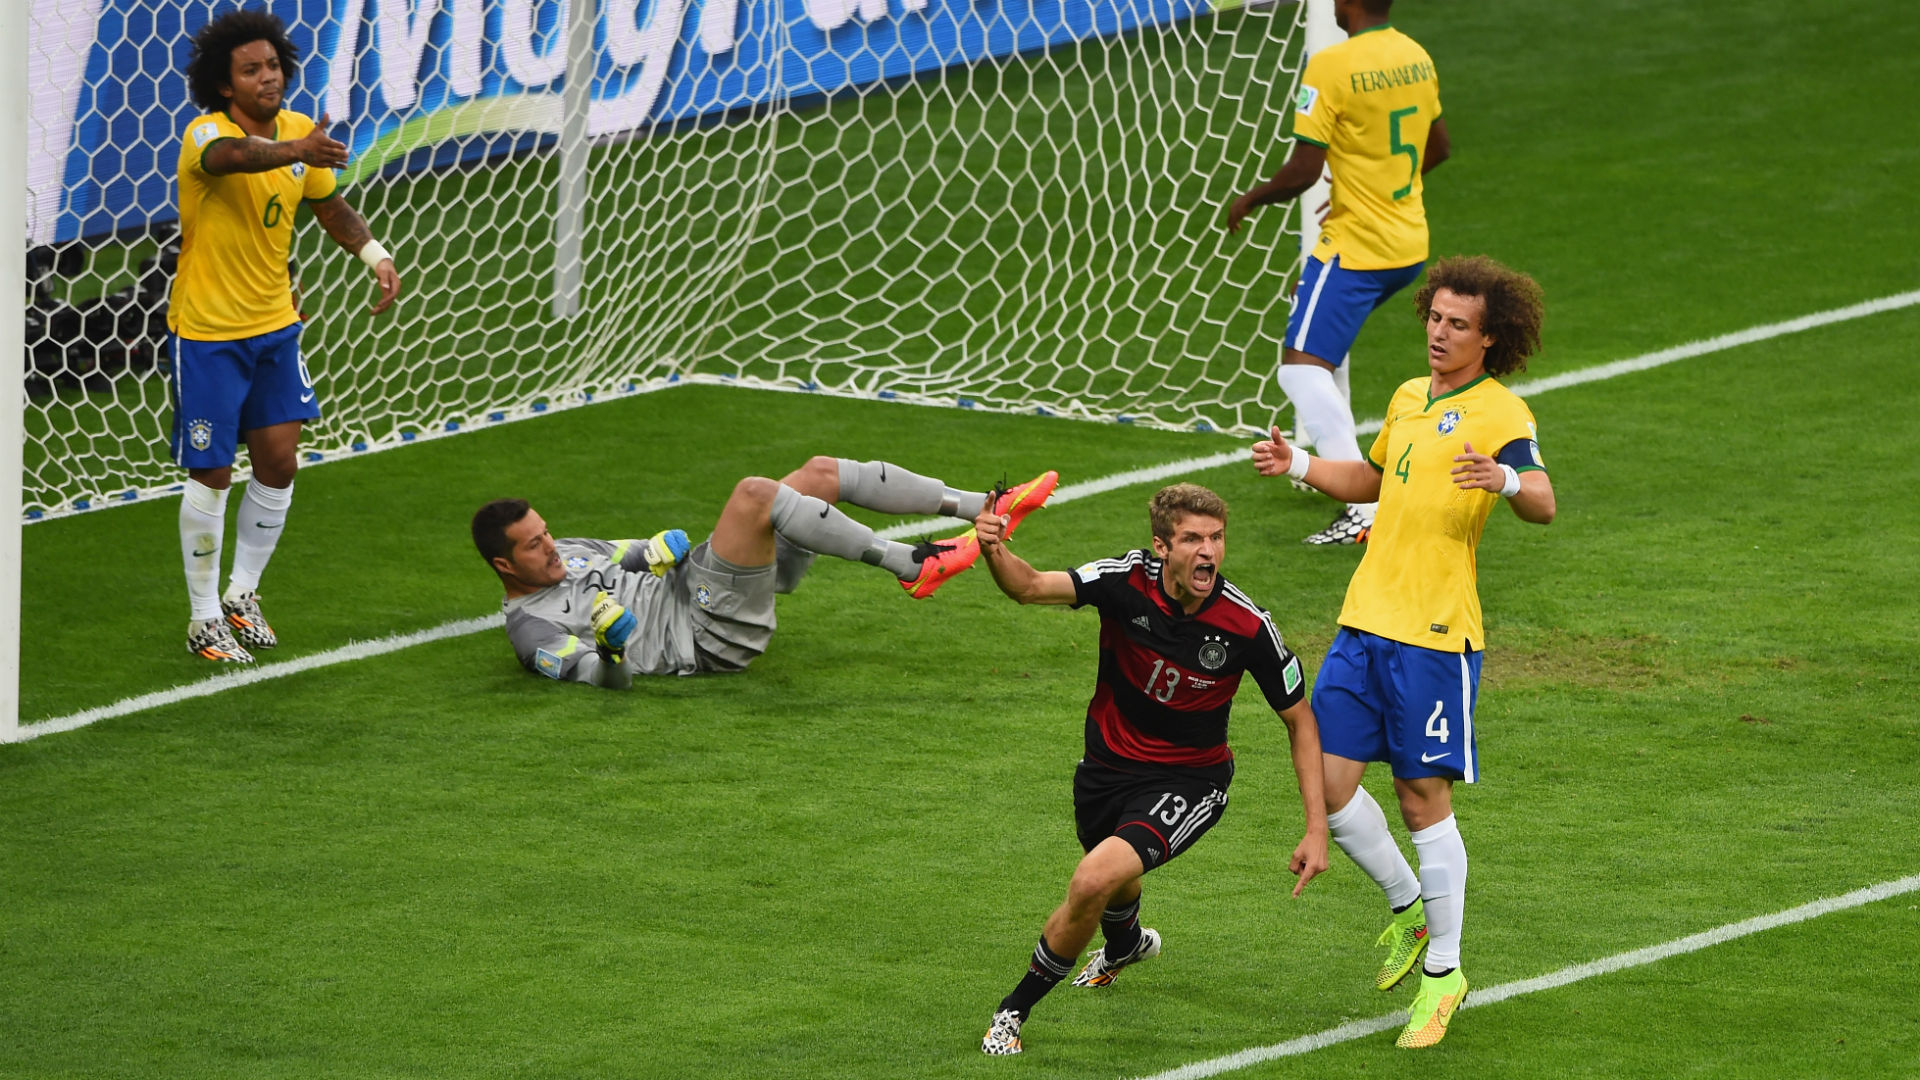 Germany 7 1 brazil betting etimesgut vs inegolspor betting experts